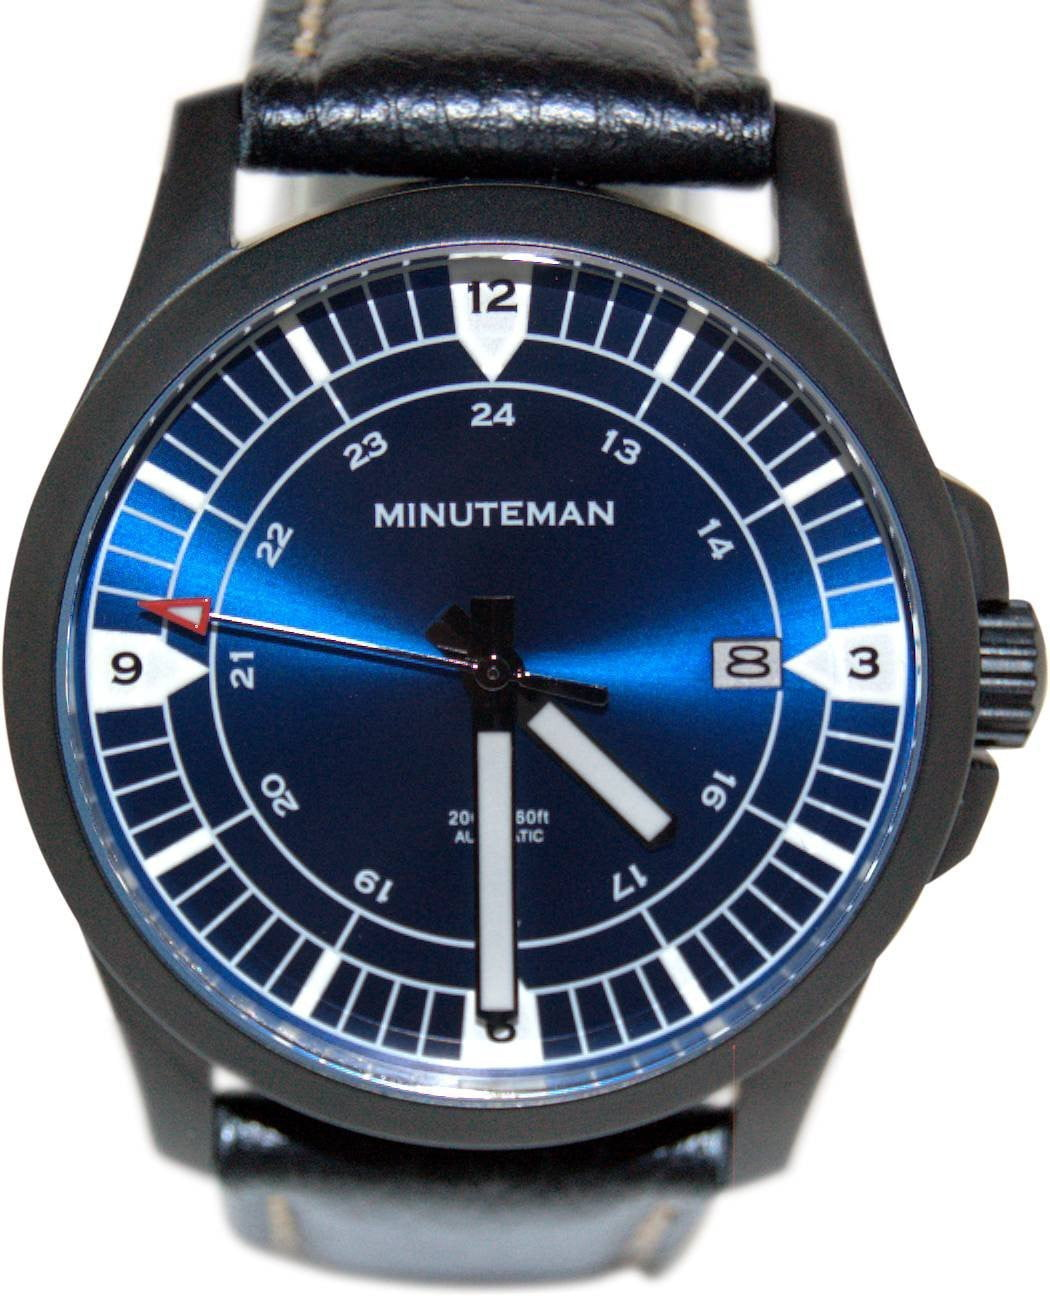 Minuteman RWB DLC finish leather strap wristwatch,minutemanwatches,Minuteman,Wrist Watch